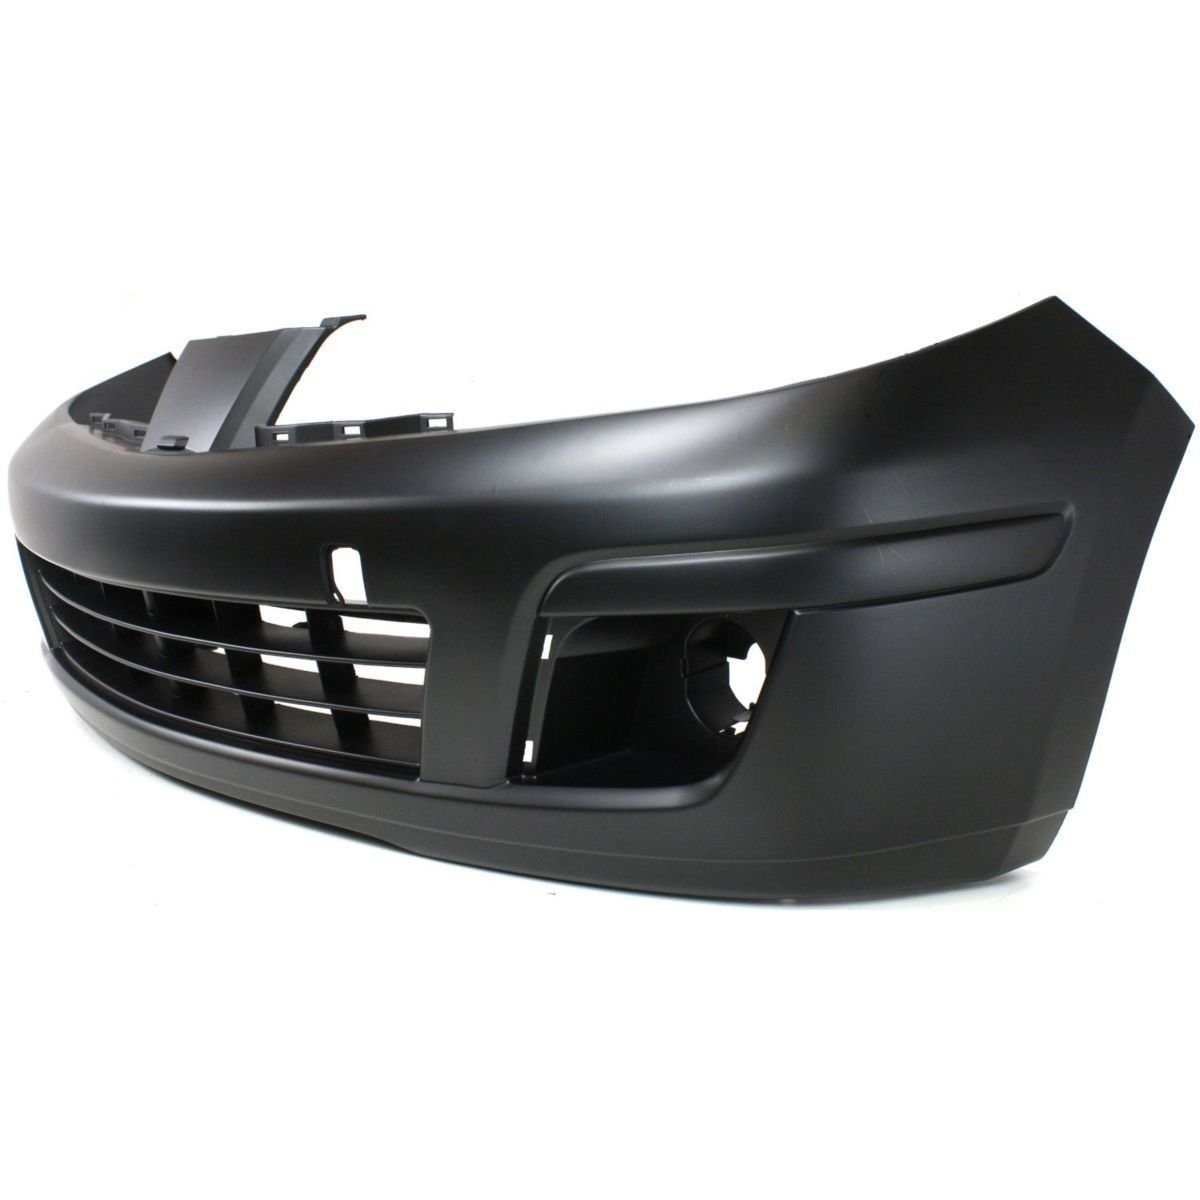 Front Bumper Cover Fascia Replacement for 2007 2008 2009 2010 2011 2012 Nissan Versa 07-12 NI1000245 Painted to Match MBI AUTO